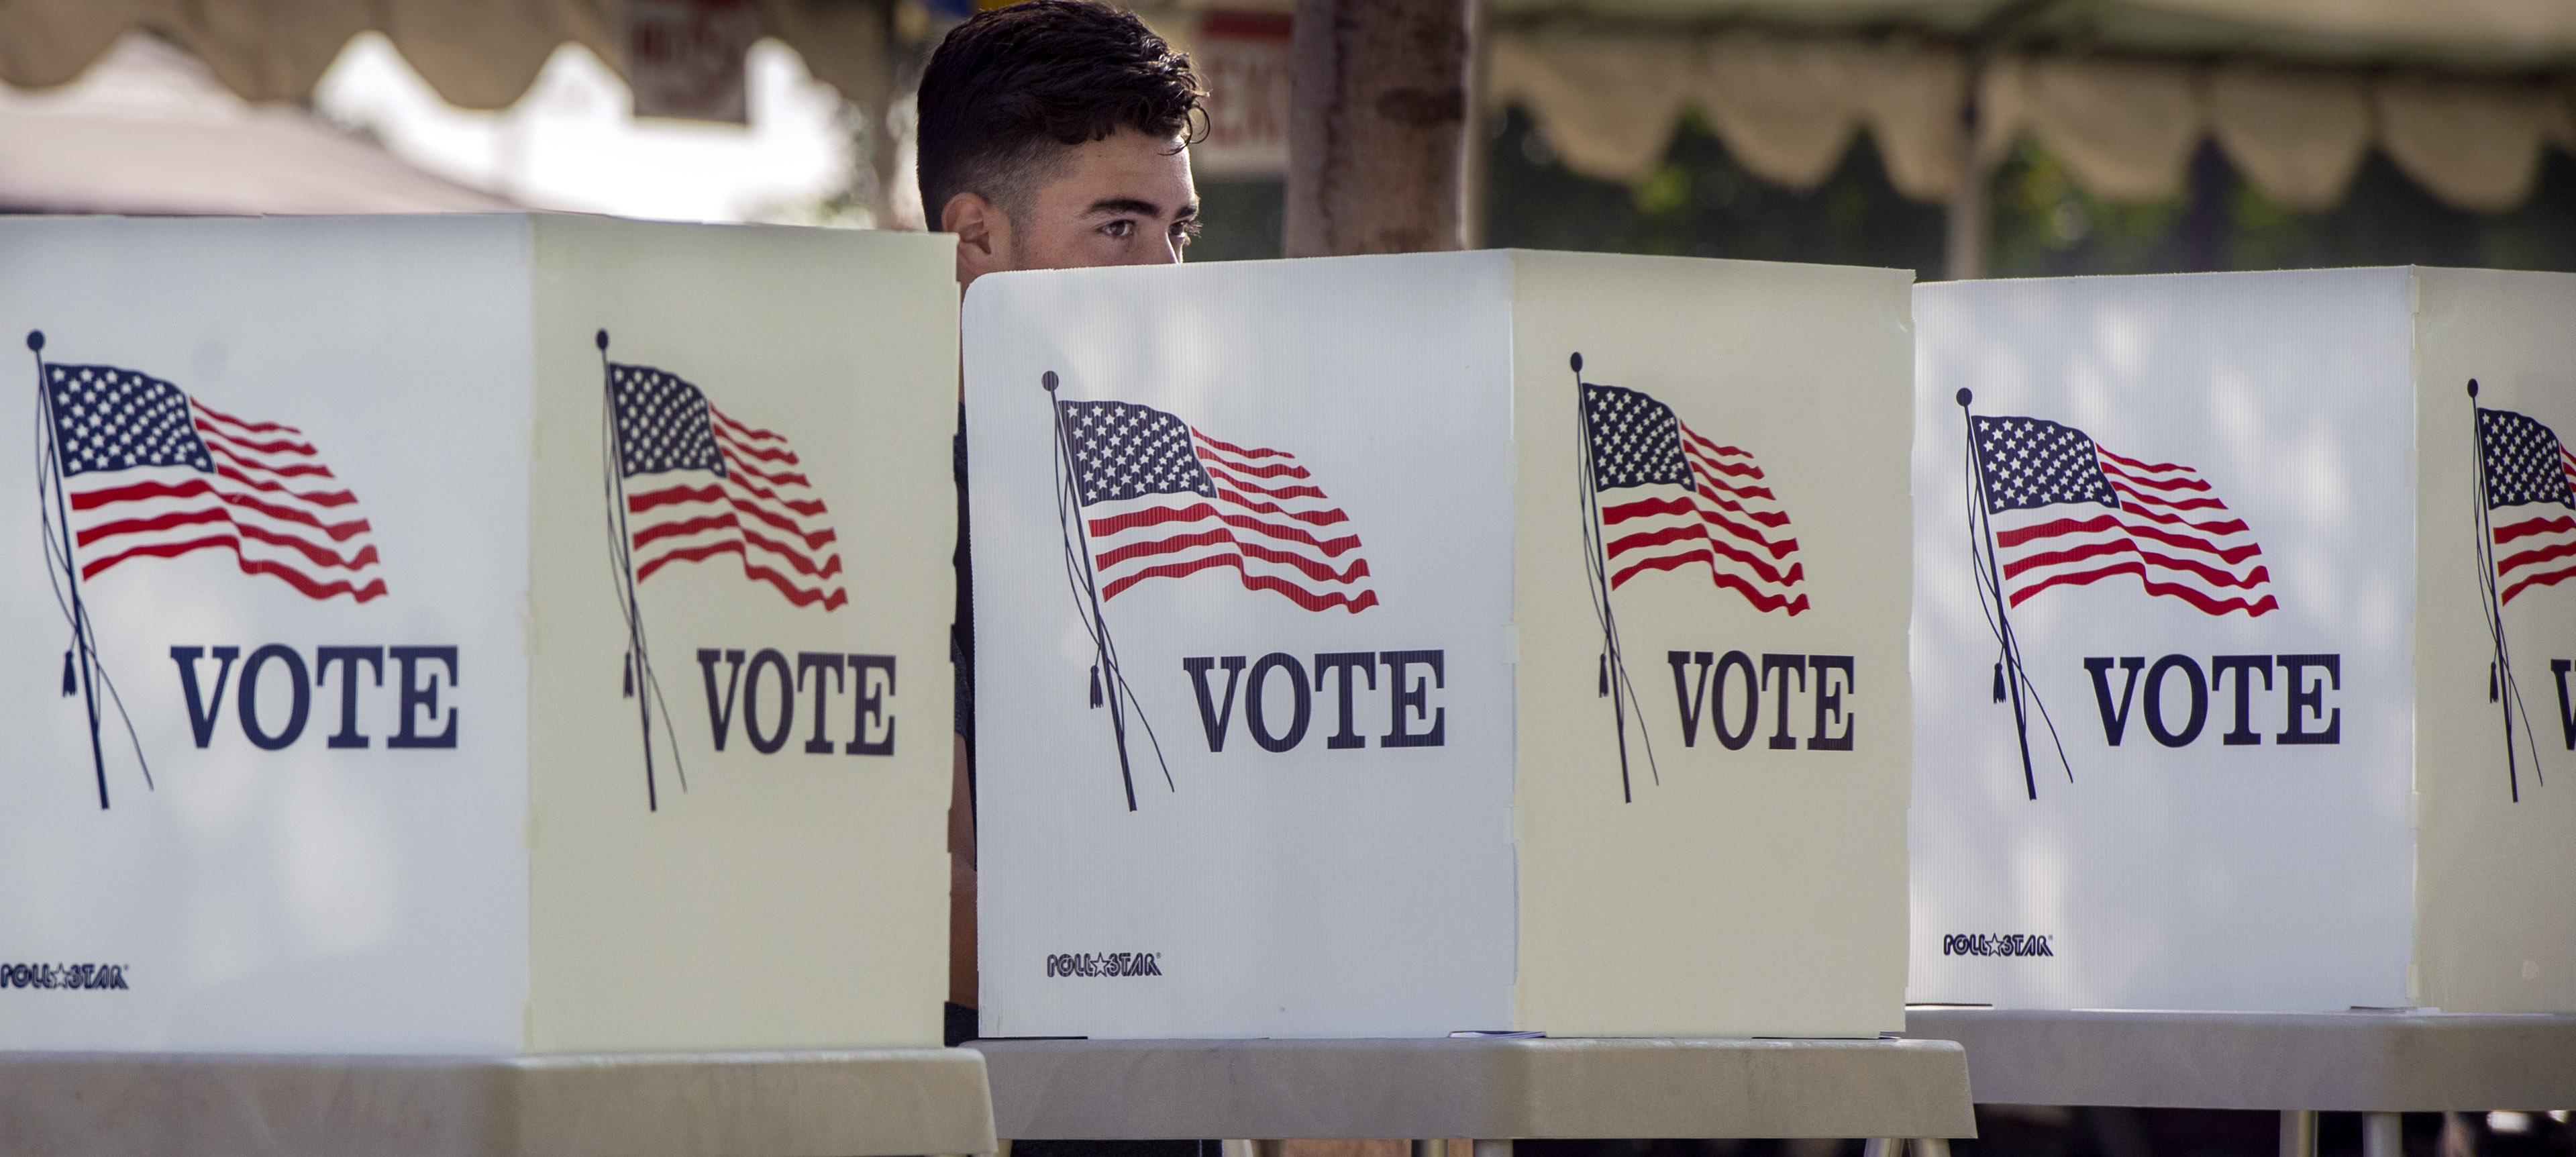 Students take part in the Power California early voting event in Norwalk, Calif., on Oct. 24, 2018. More than 400 students from seven Los Angeles Unified schools registered, organizers said.